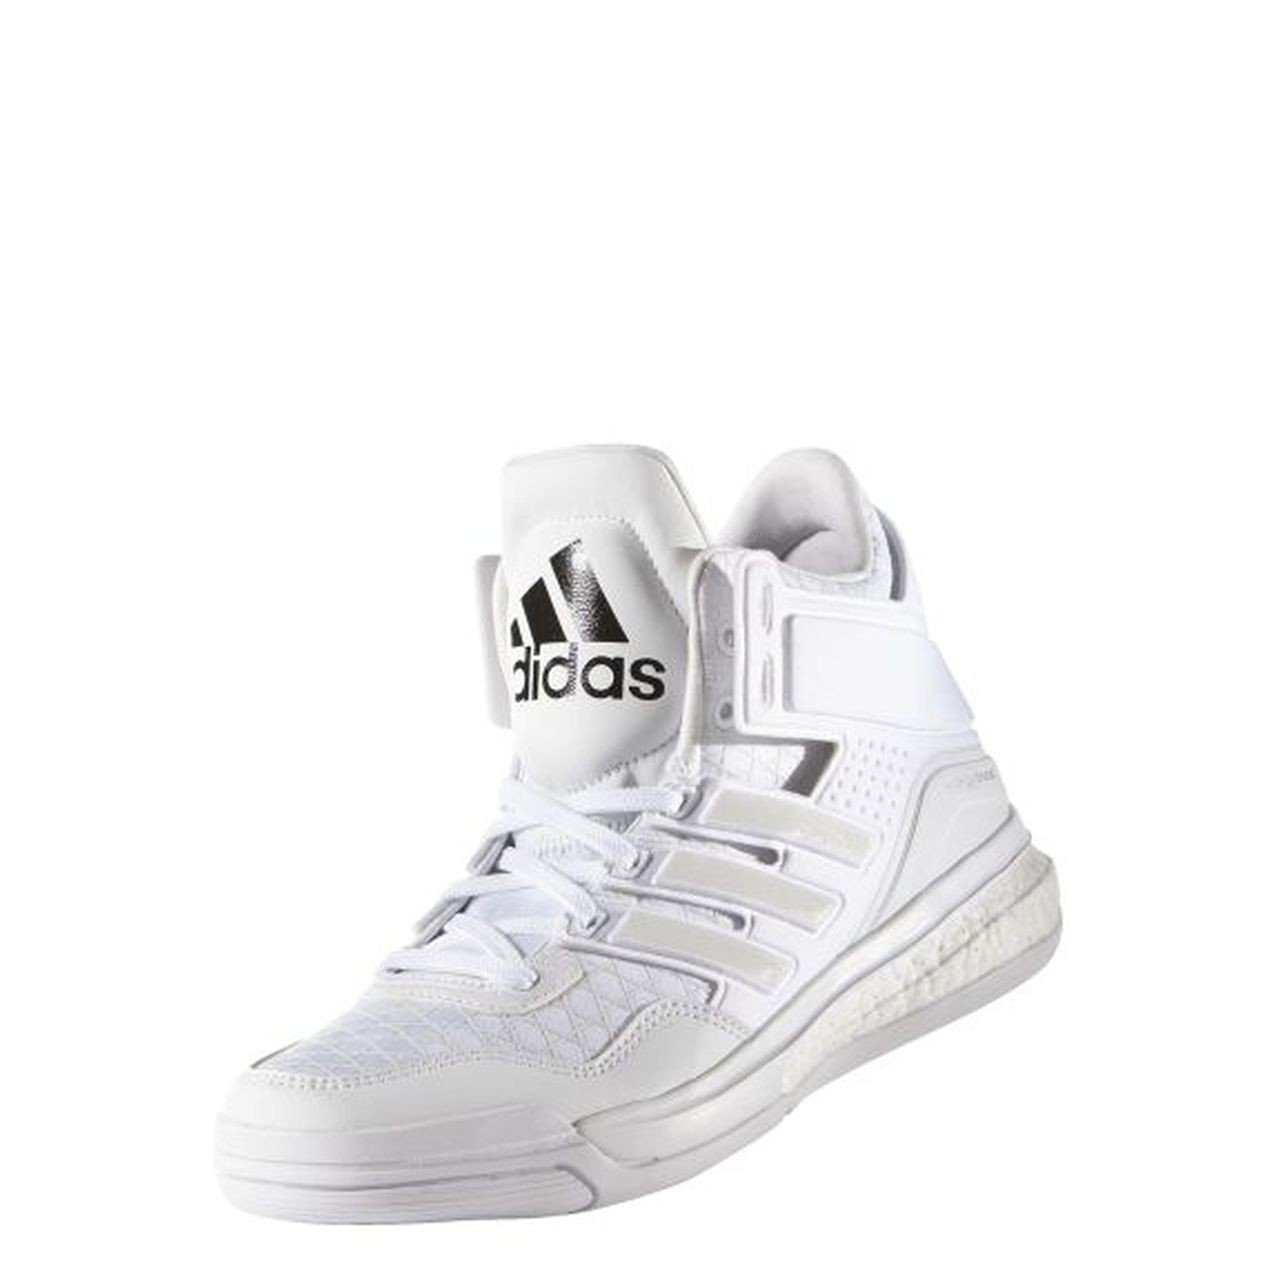 Adidas Chaussure Aw15 Pied Boost Vibe À Women's Energy